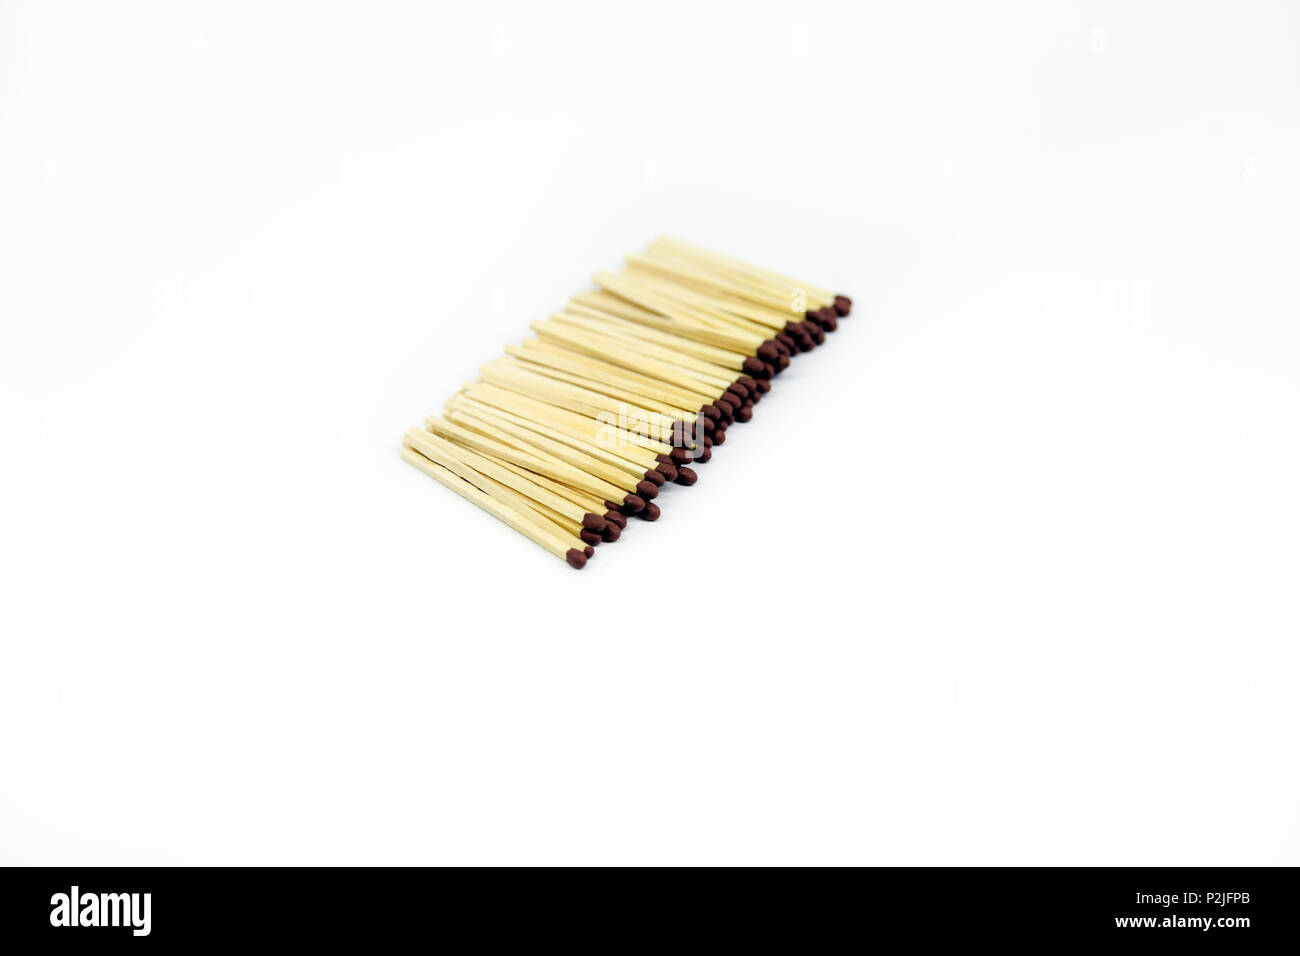 Brown New Matches ordered isolated on white background - Stock Image